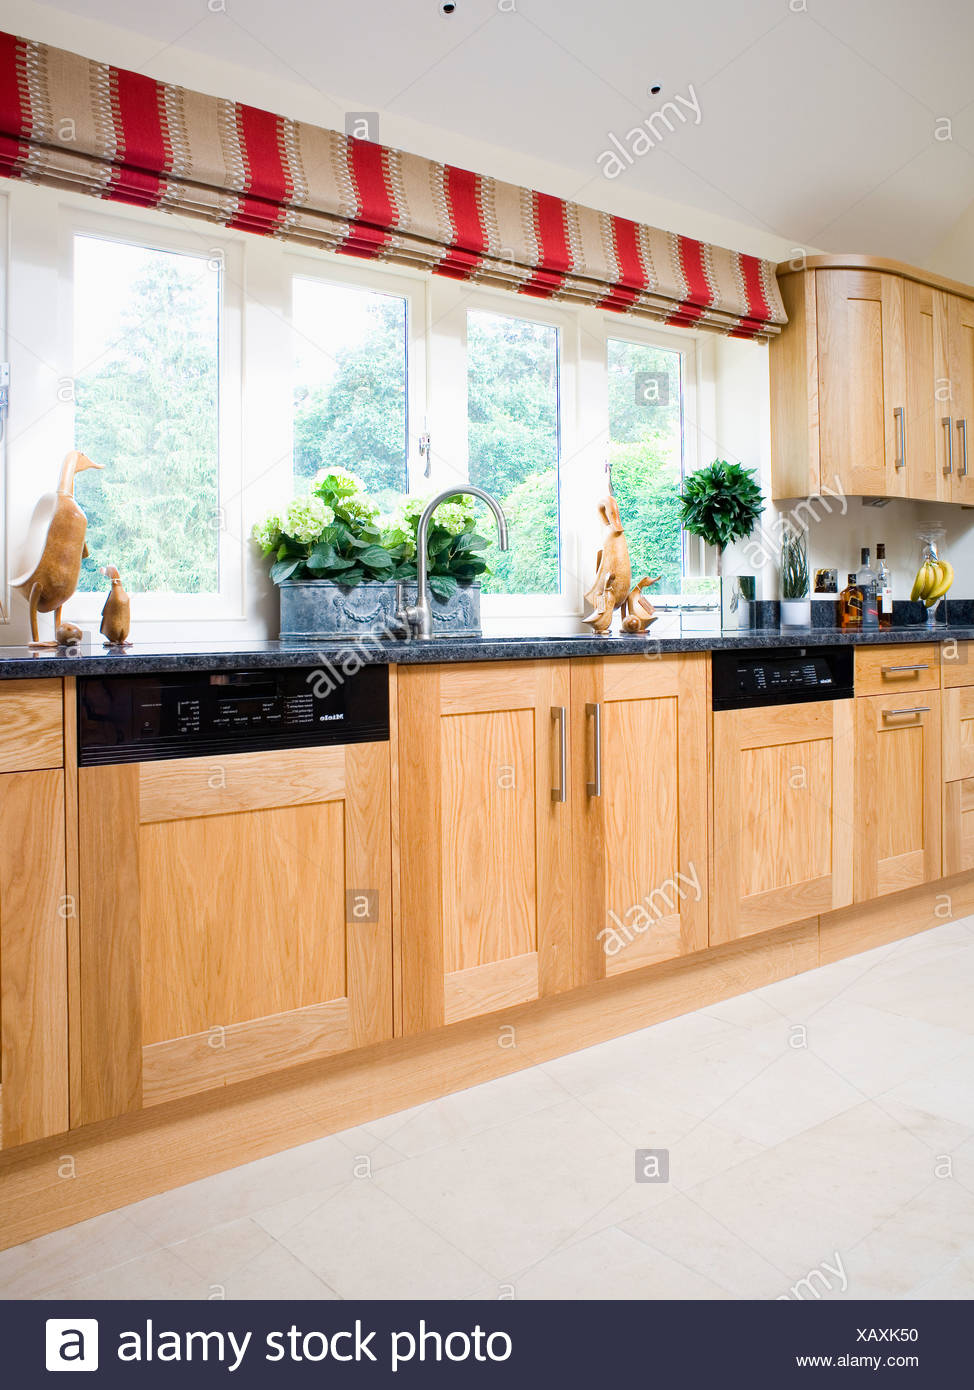 Fantastisch Country Kitchens Stockfotos U0026 Country Kitchens Bilder Seite 3 Alamy